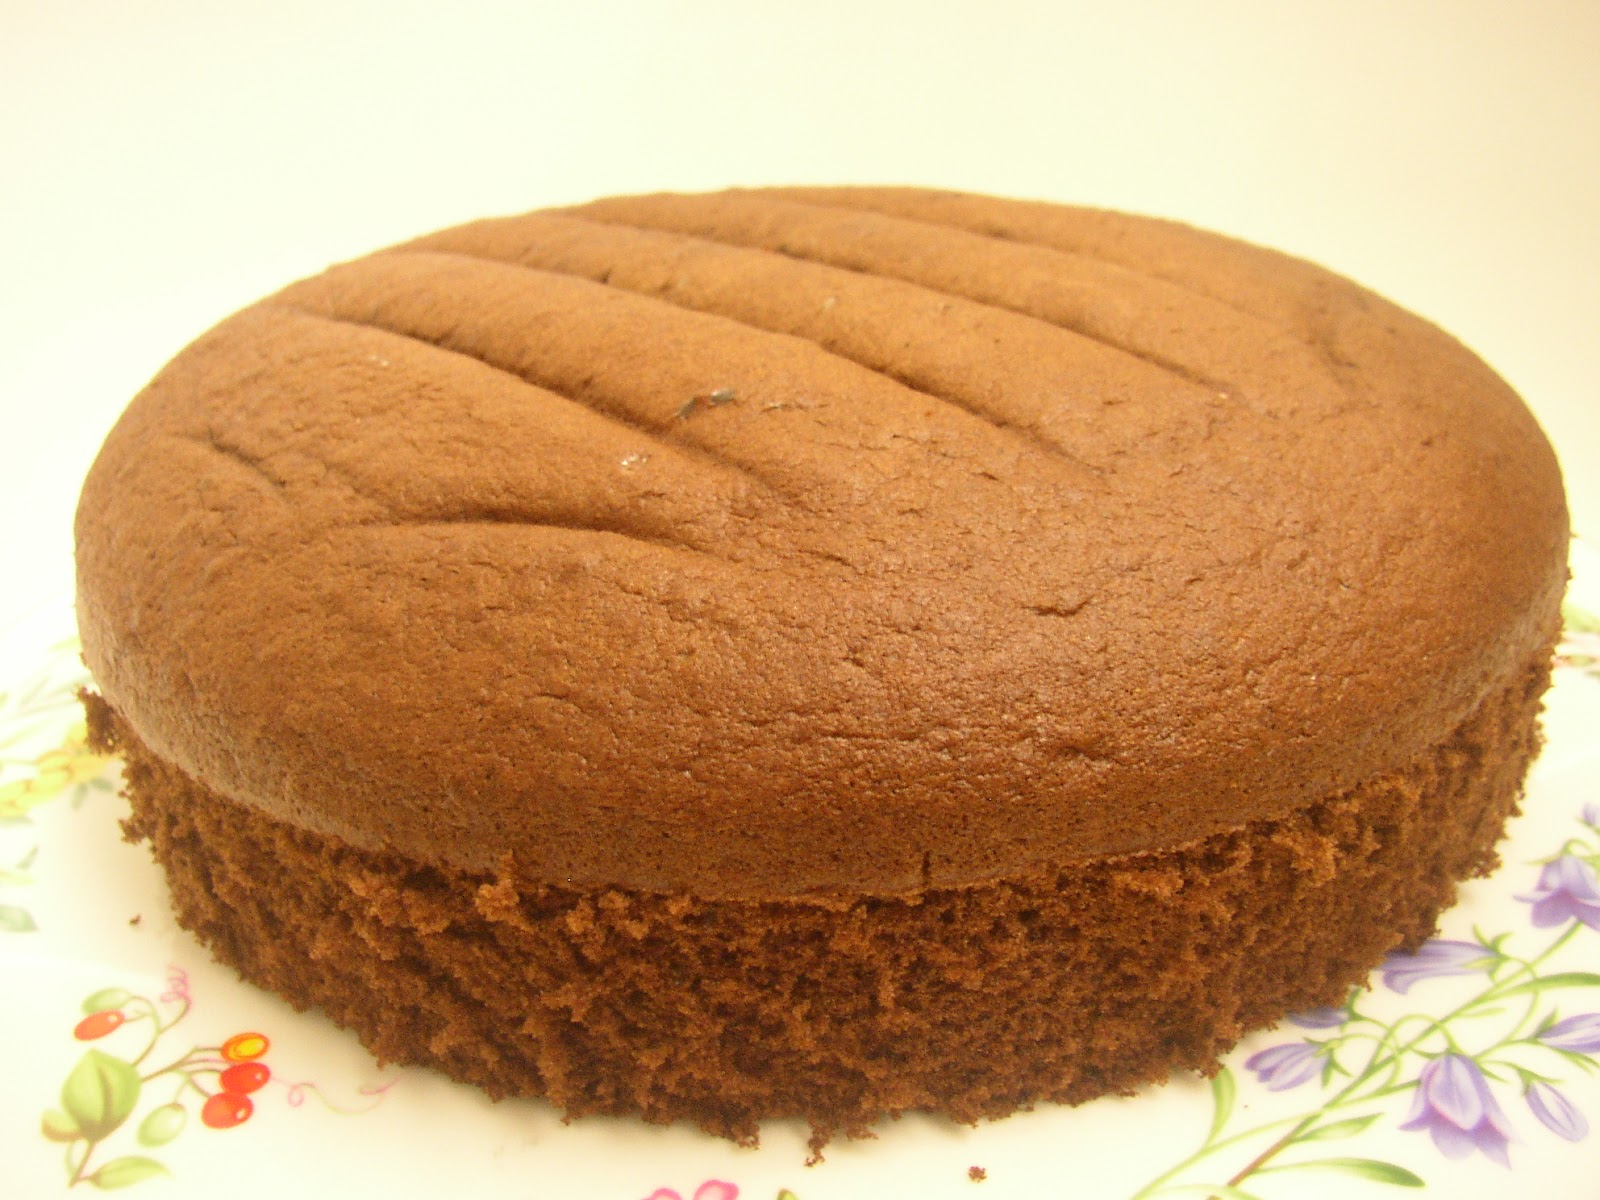 Life Is An Illusion: Chocolate Sponge Cake